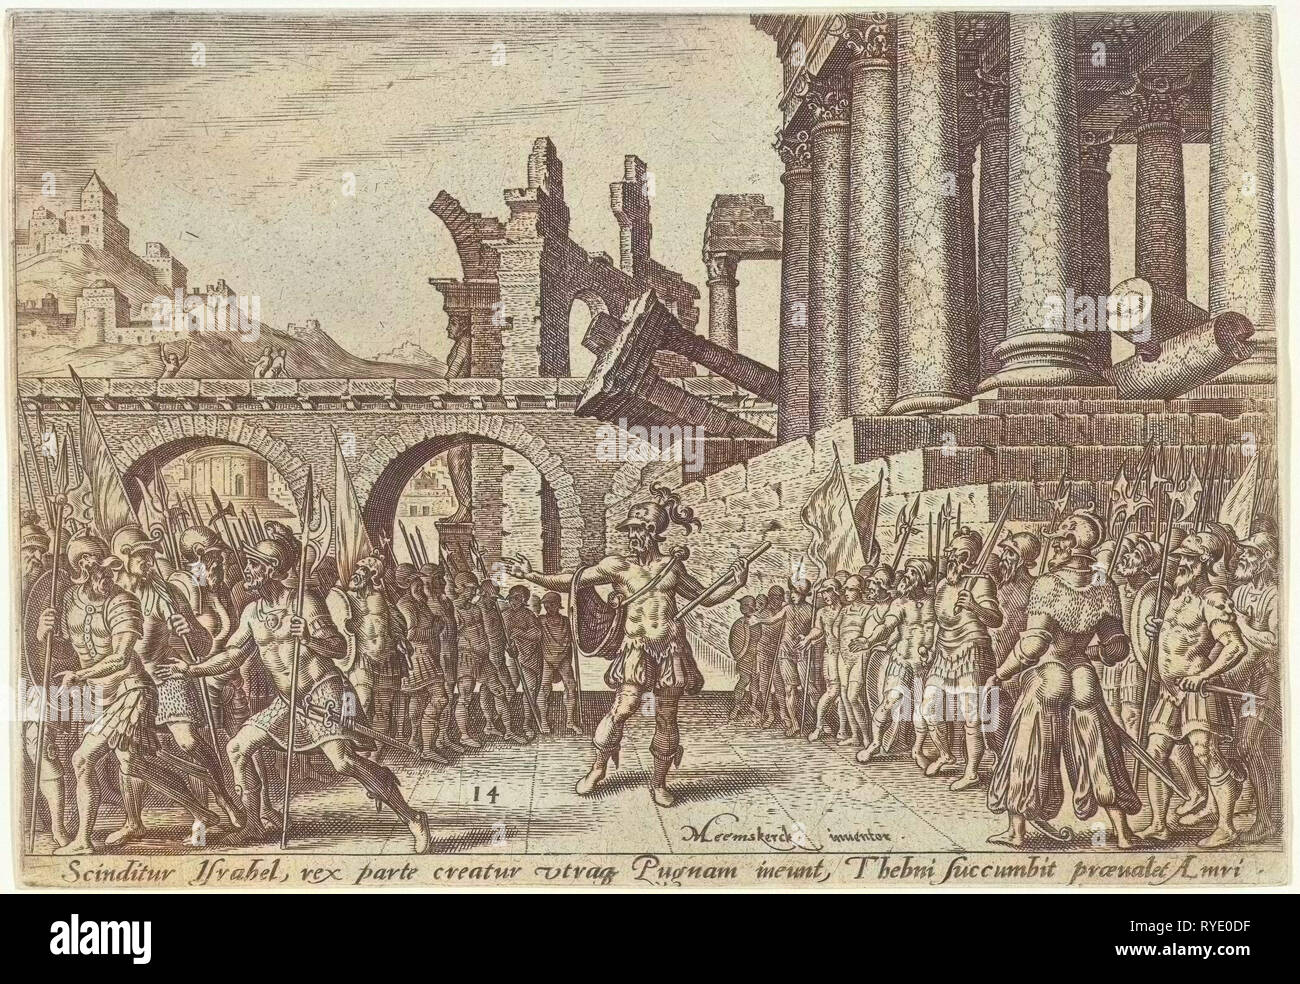 The people of Israel divided between Omri and Tibni, Philips Galle, 1569 - Stock Image